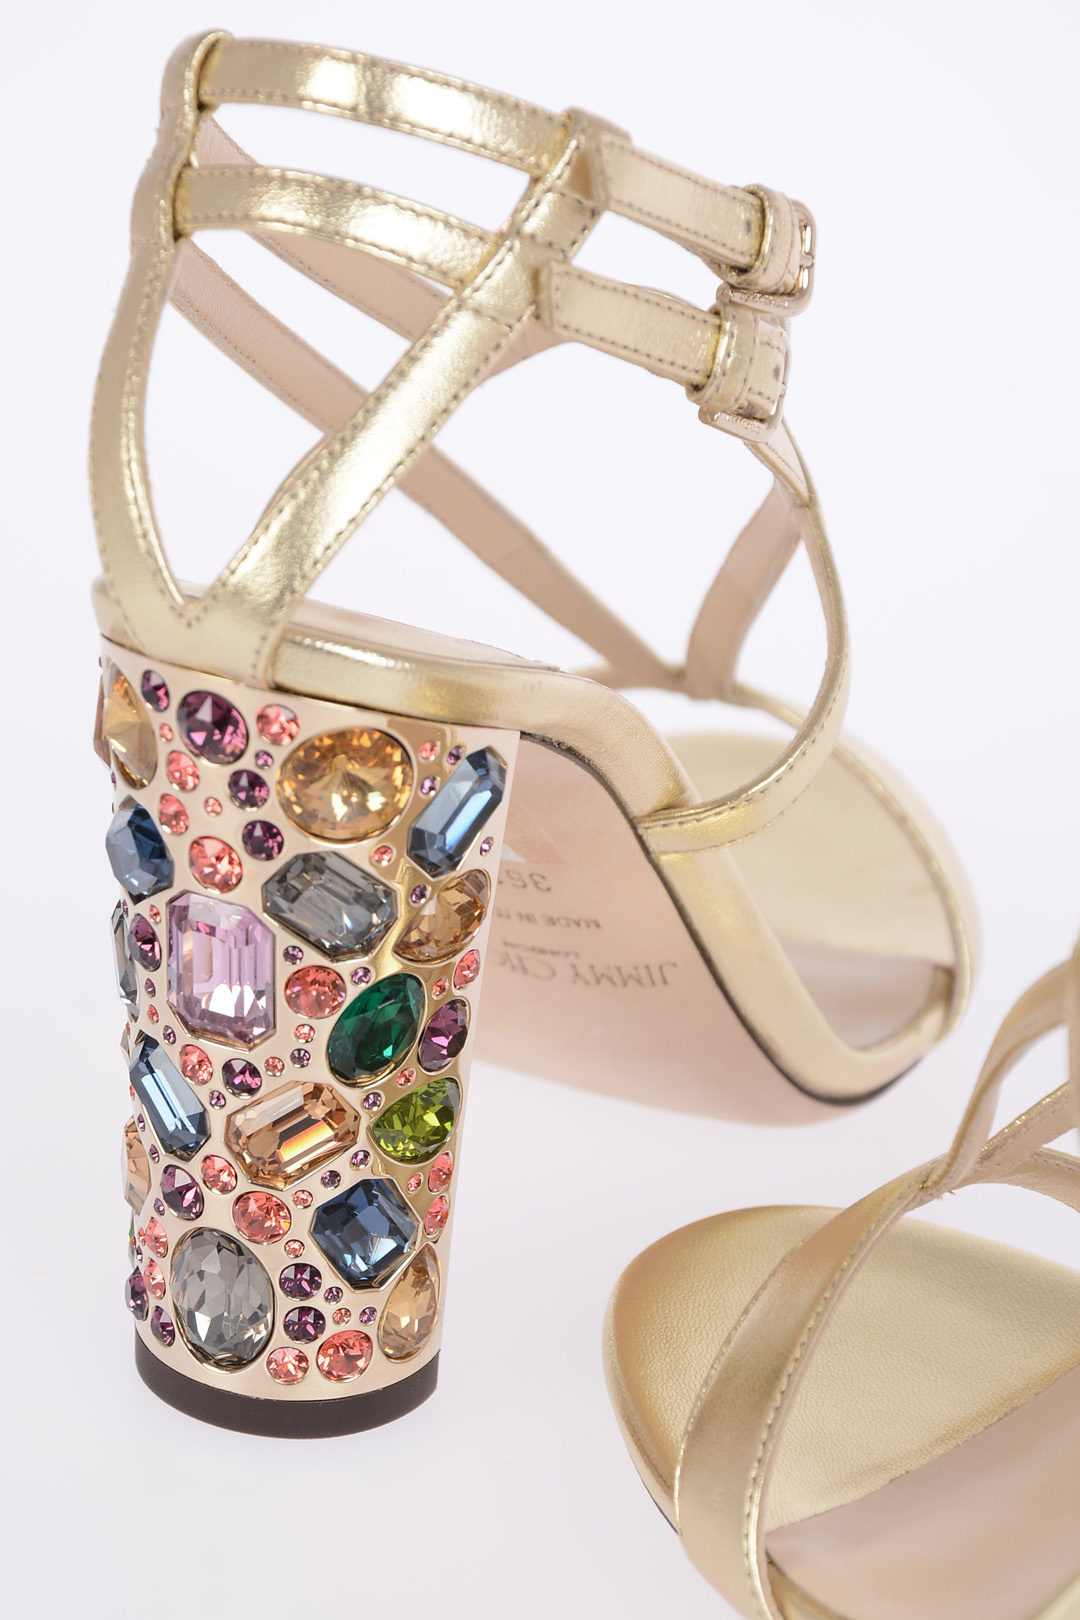 9396d60a7d497f Jimmy Choo 10 cm Leather MAEVE Sandals with Jewel Heel women ...